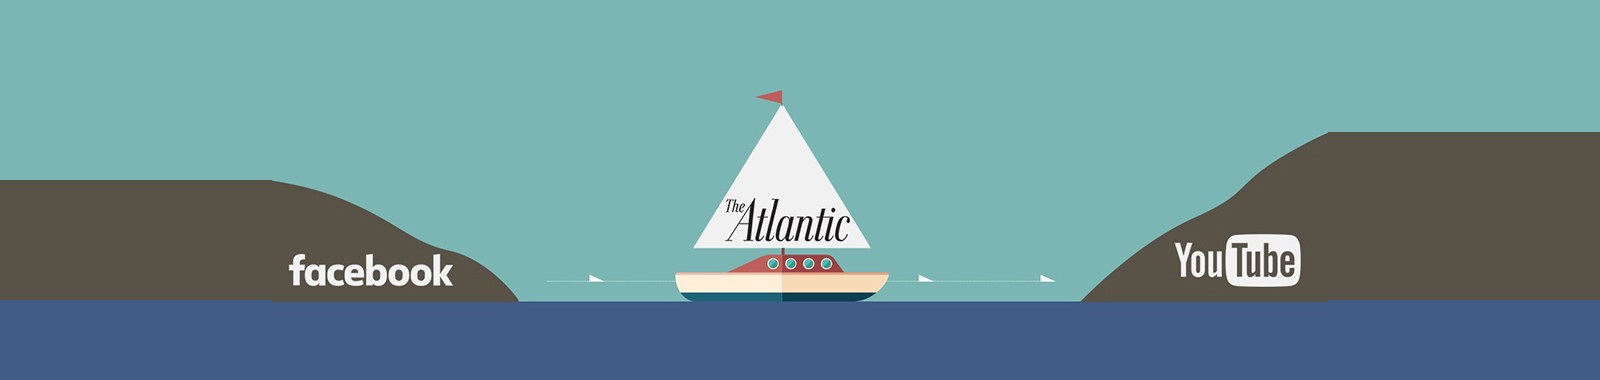 The-Atlantic-Sail-eye